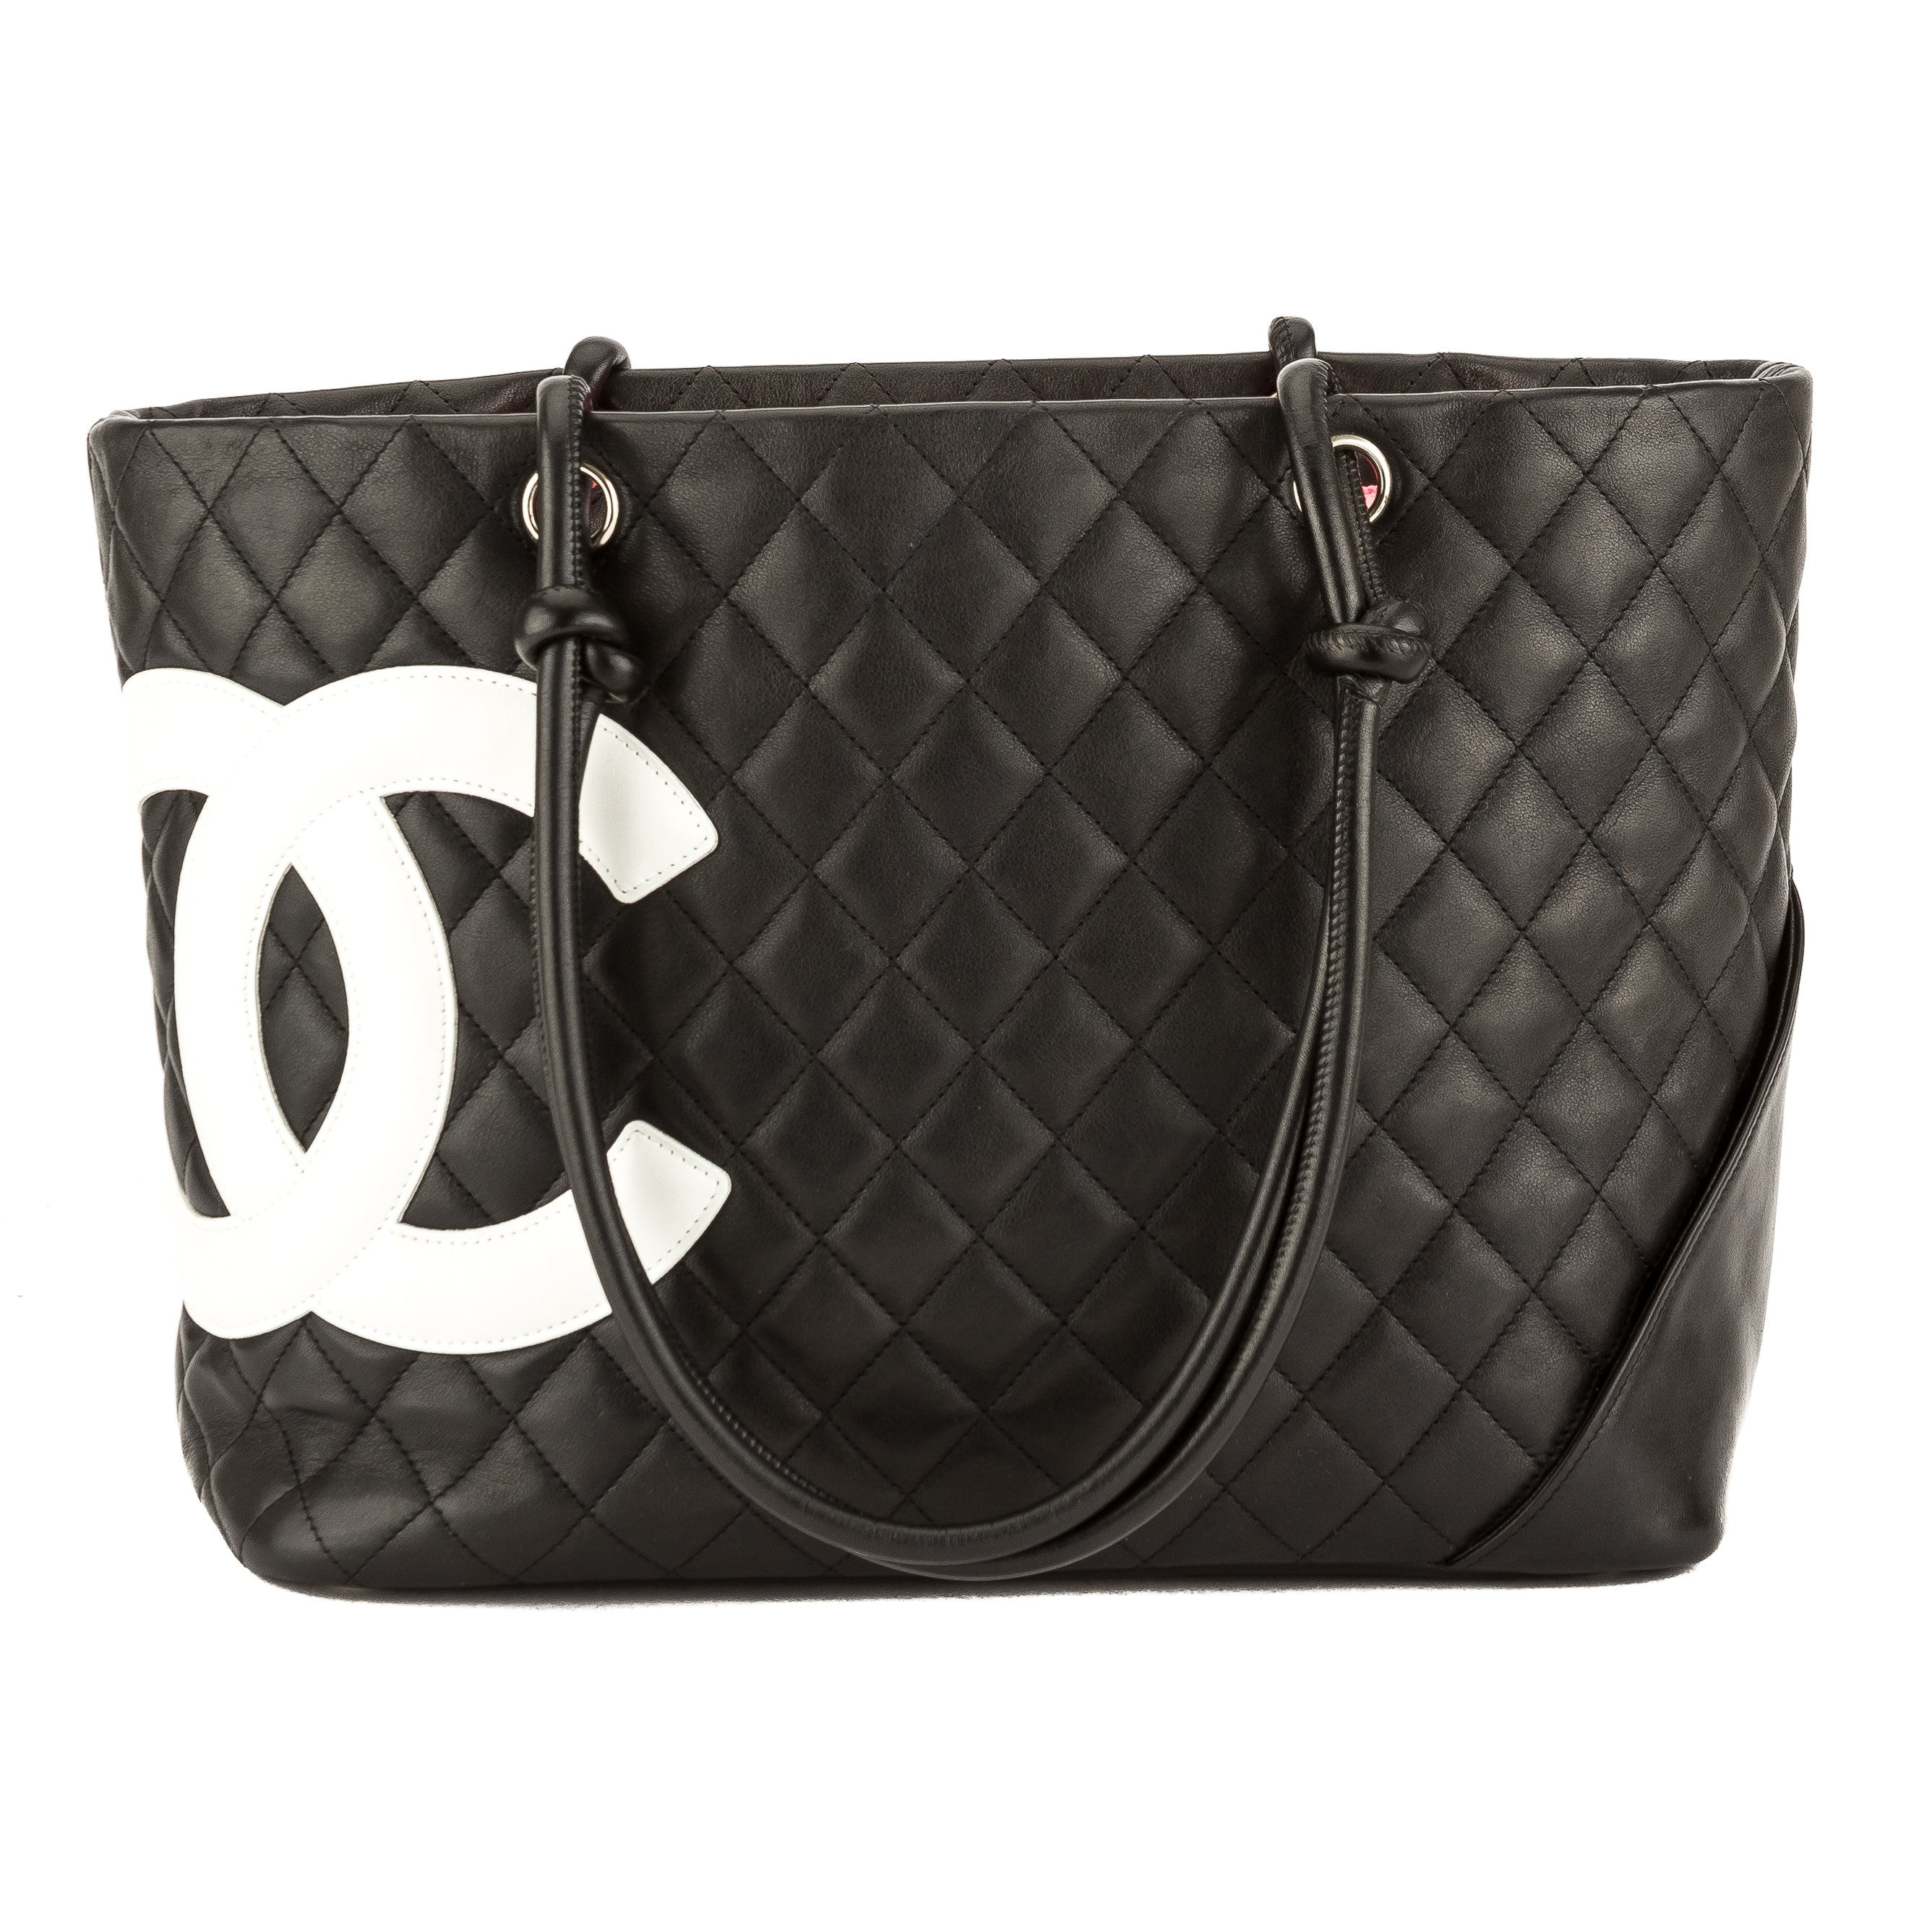 483754c5a45e Chanel Black Quilted Calfskin Leather Cambon Ligne Large Tote Pre Owned